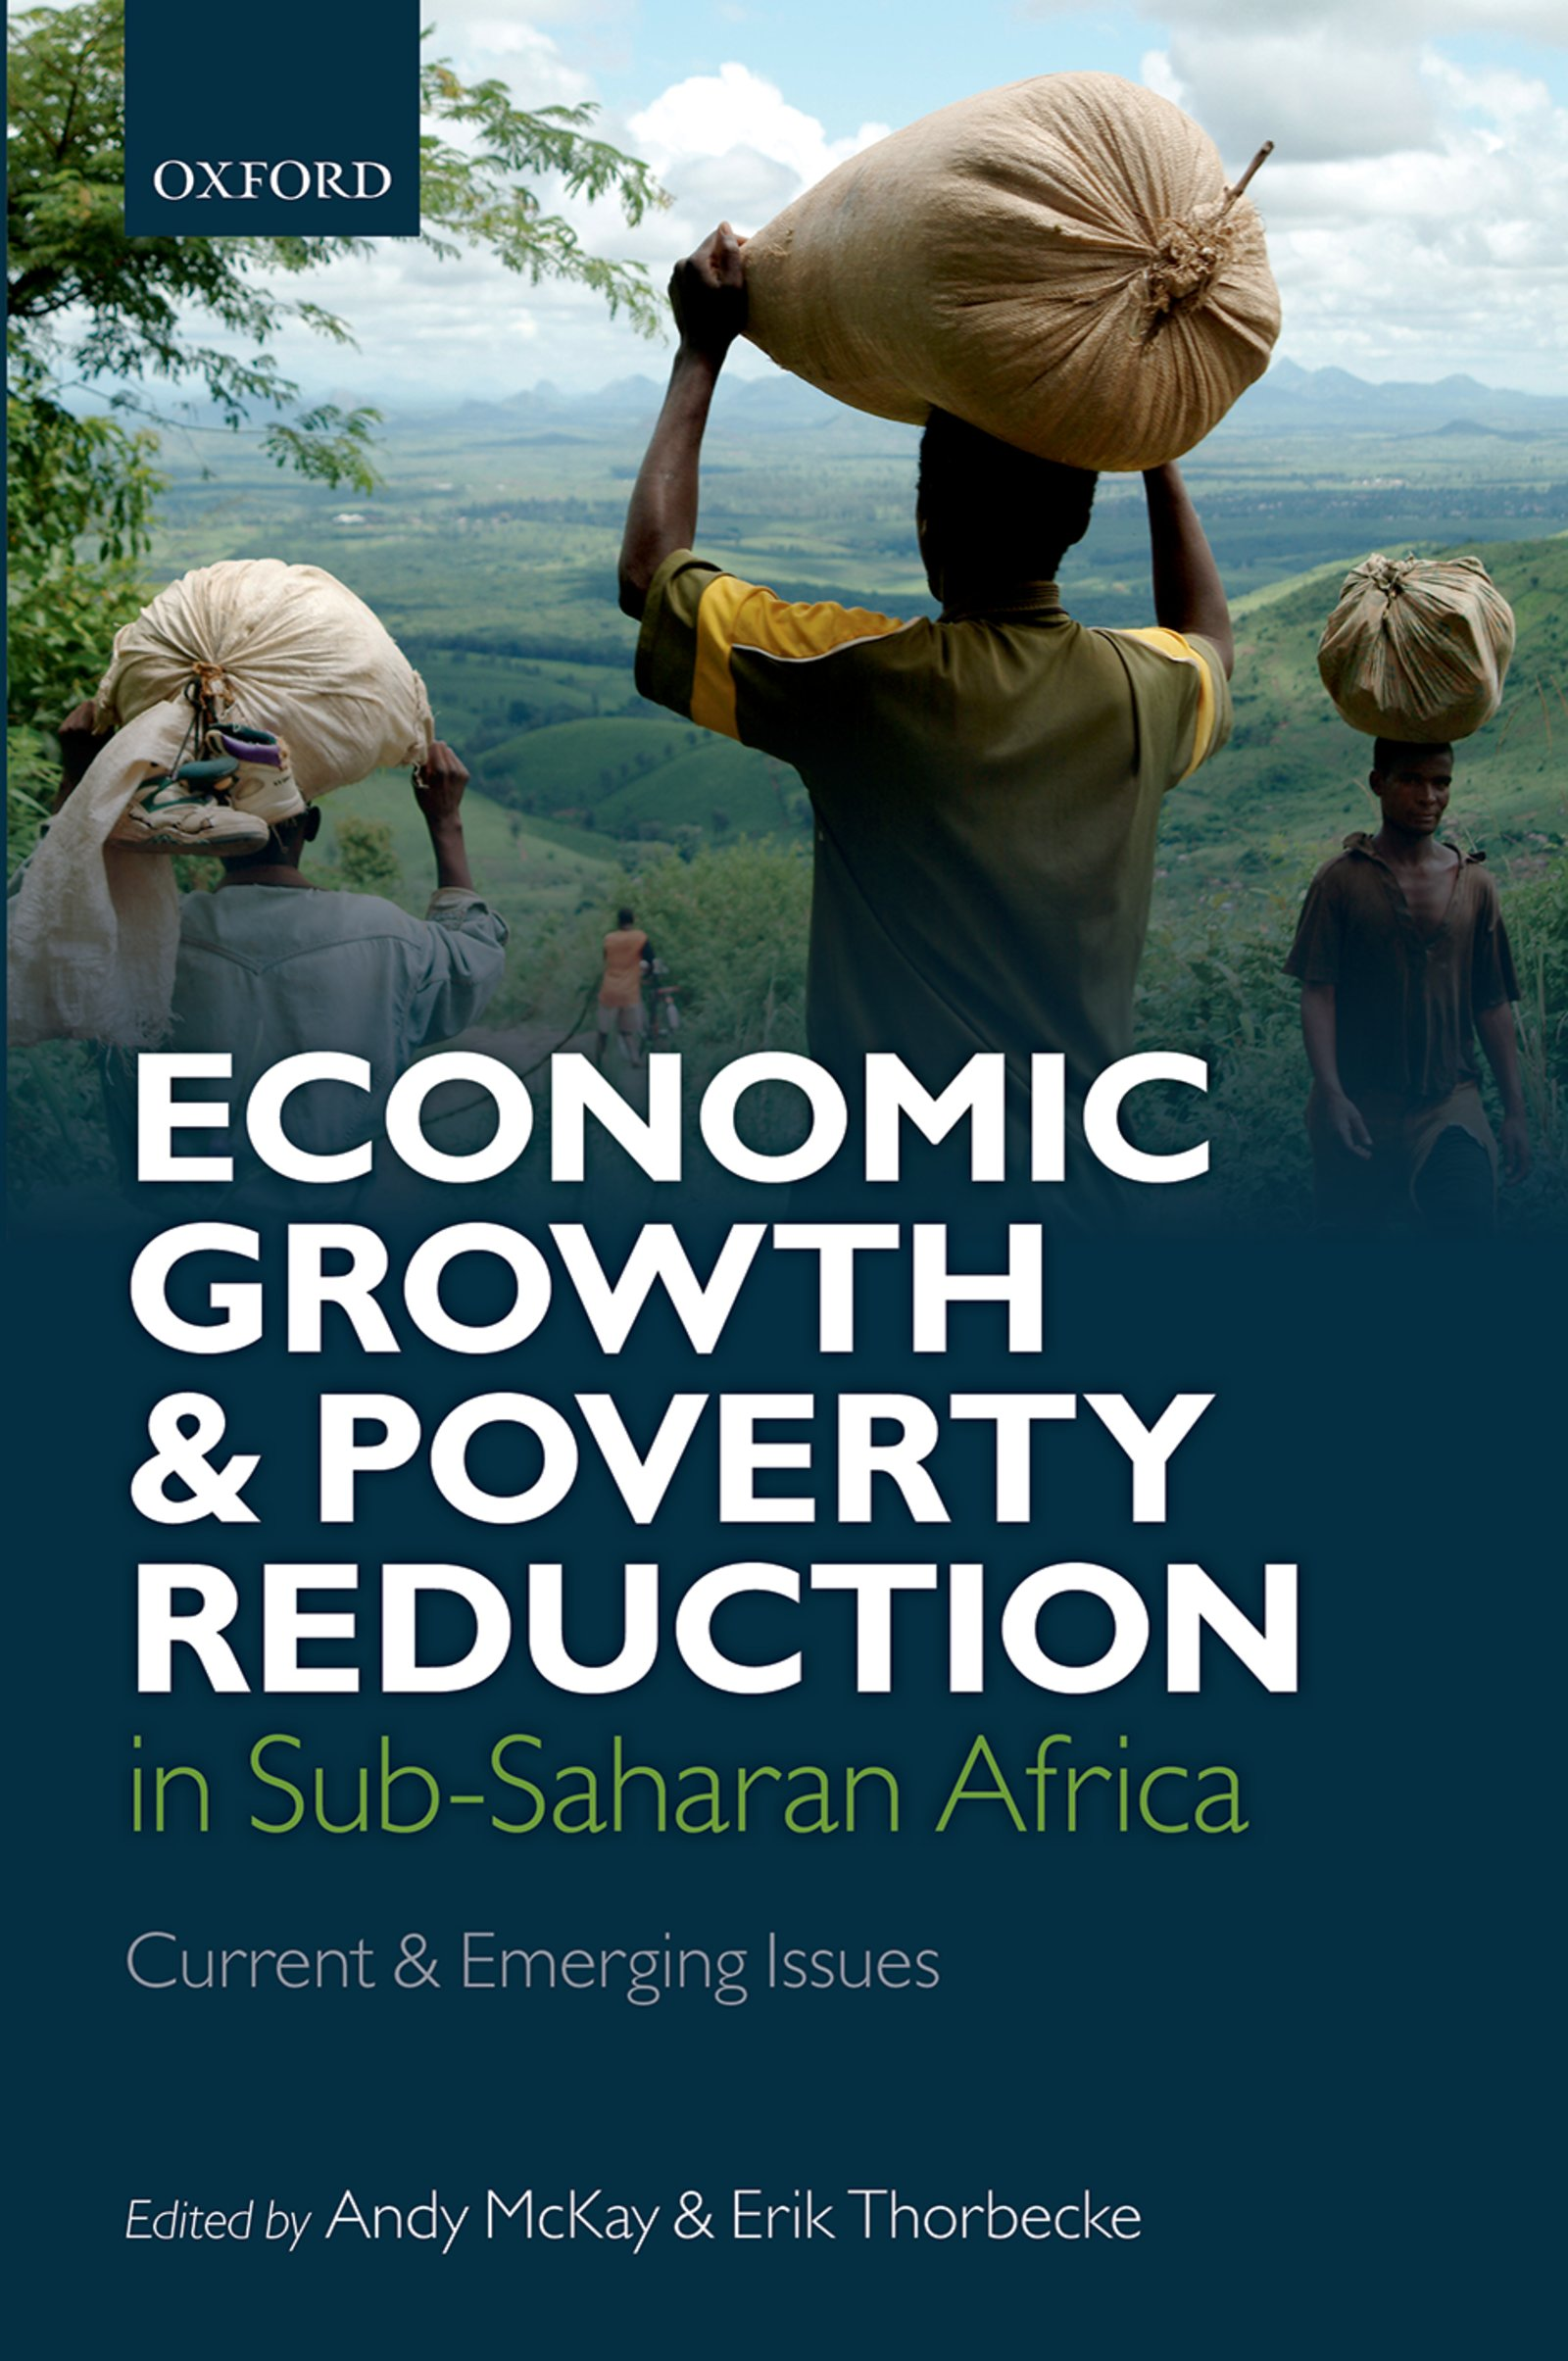 Download Ebook Economic Growth and Poverty Reduction in Sub-Saharan Africa by Andrew McKay Pdf